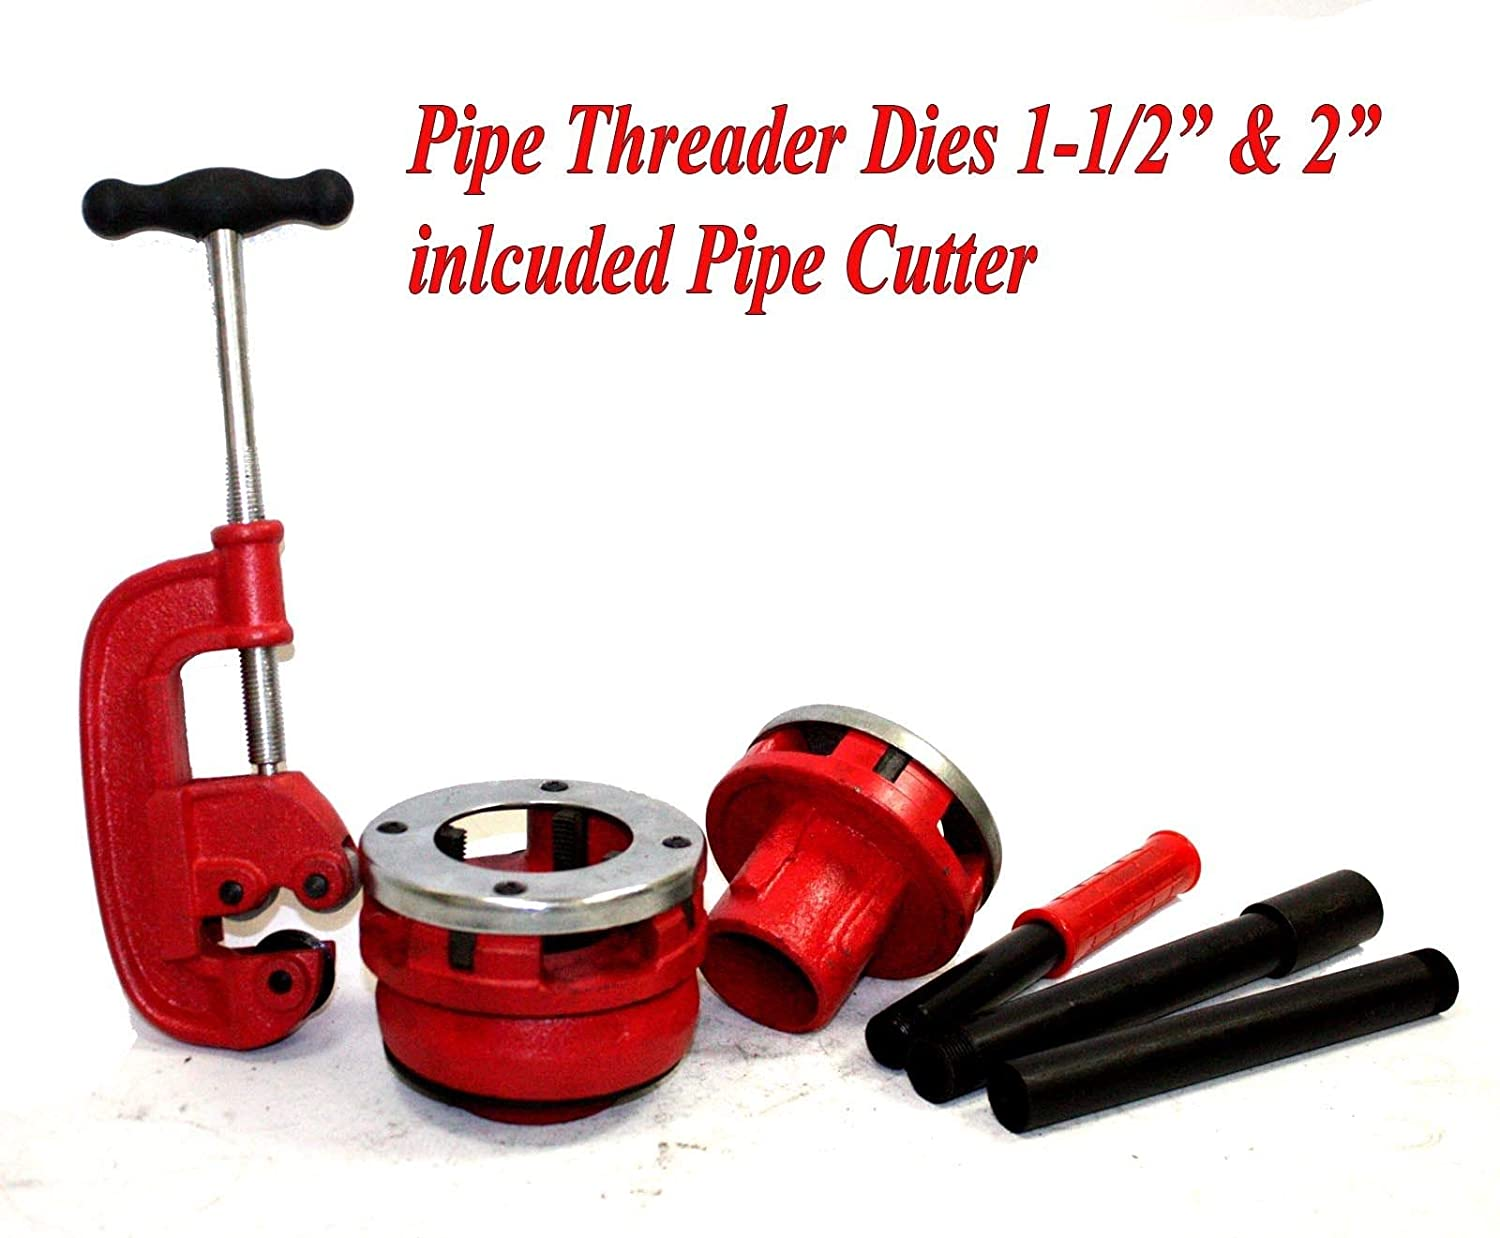 1-1//2 Pipe Threader Ratcheting Type 3pc 1-1//4 2 Steel Cutting Bits